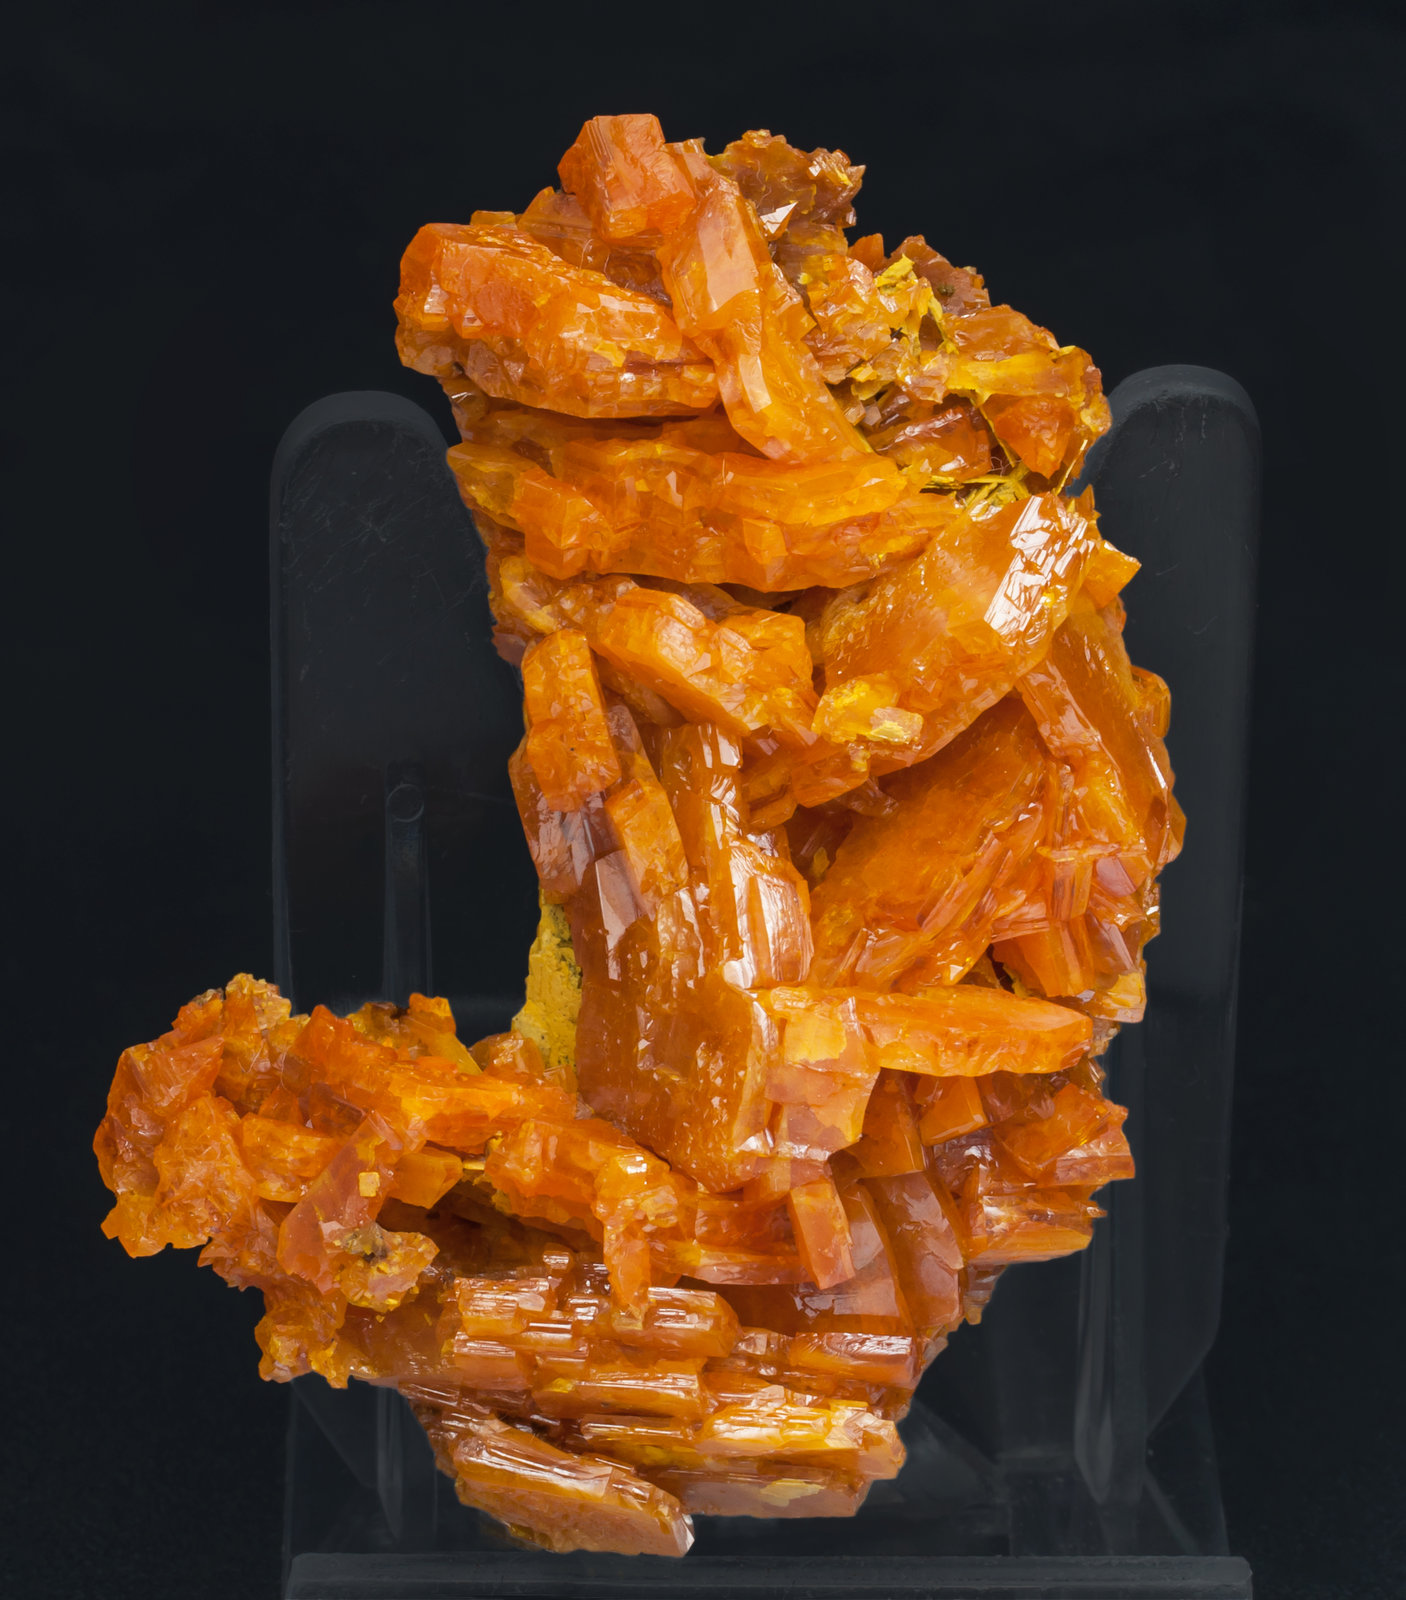 specimens/s_imagesAK9/Wulfenite-EB37AK9s.jpg